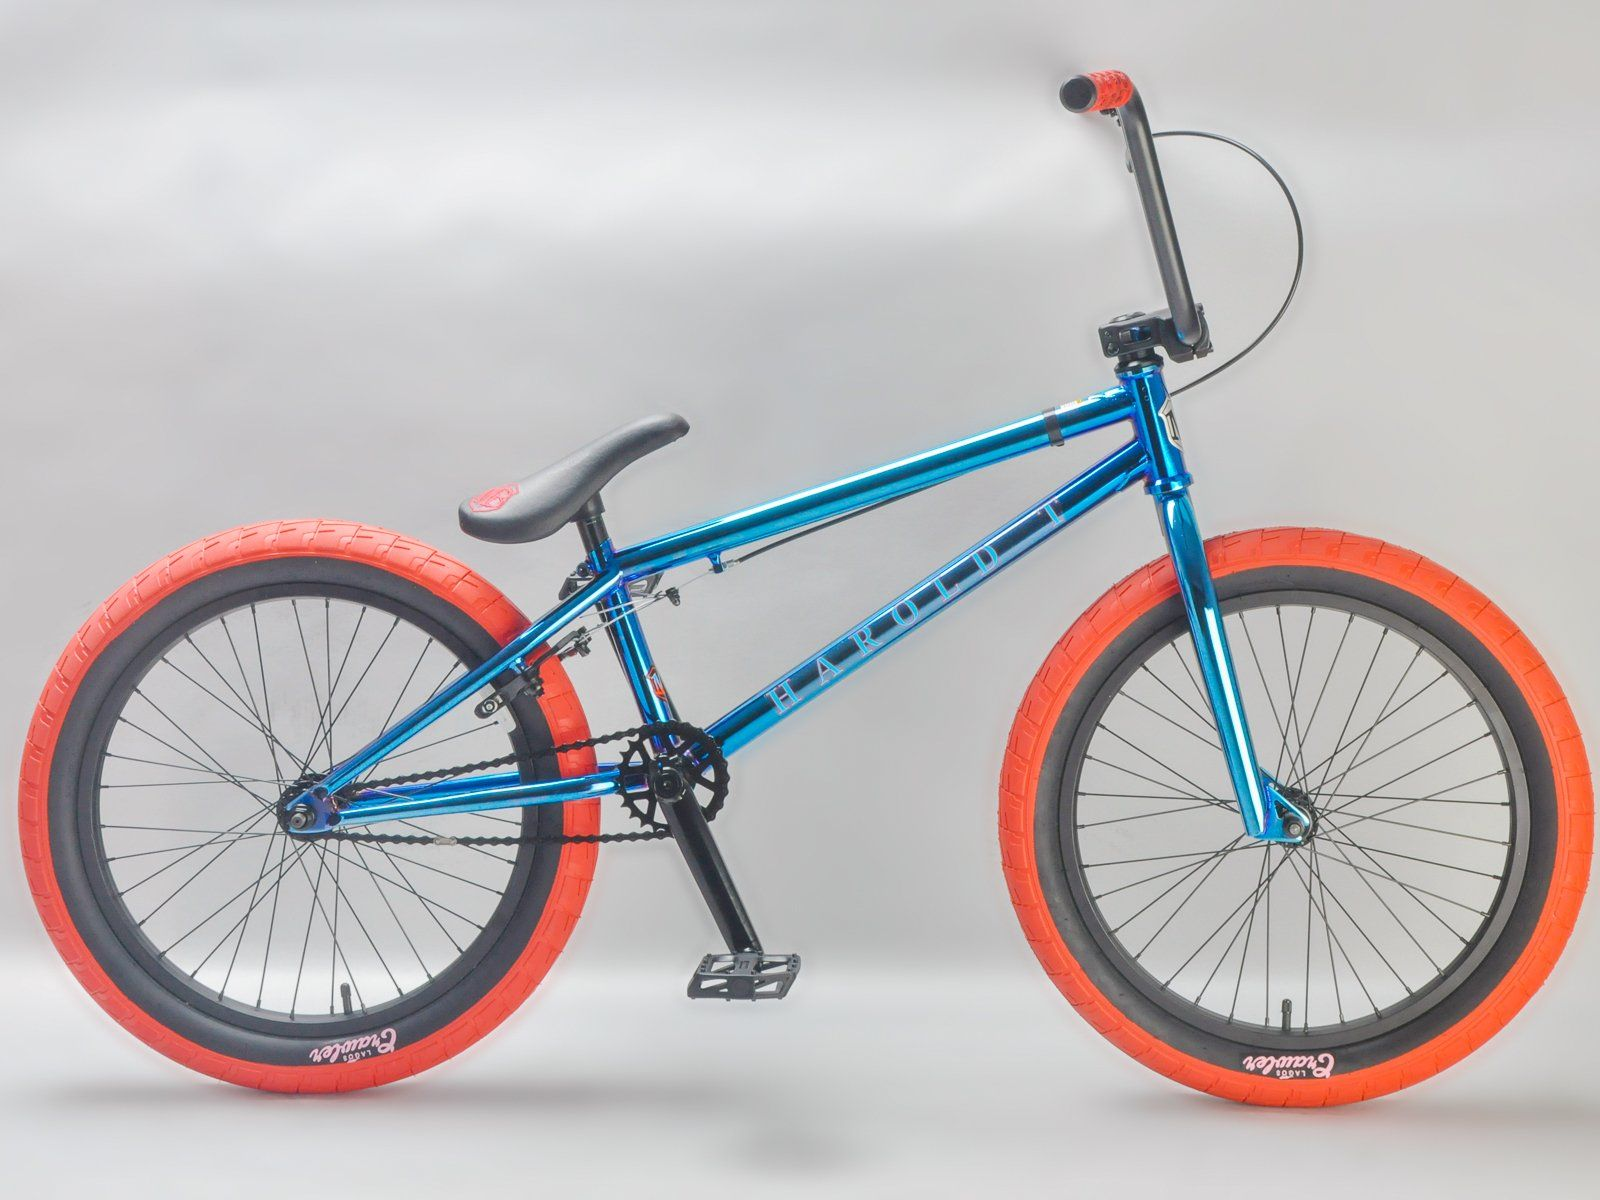 Mafiabikes Madmain 20 Blue Fuel Harry Main Bmx Bike Harry Main Mafia Lightweight Freestyle Bmx With A Very High Specifica Bmx Bikes Bmx Racing Racing Bikes